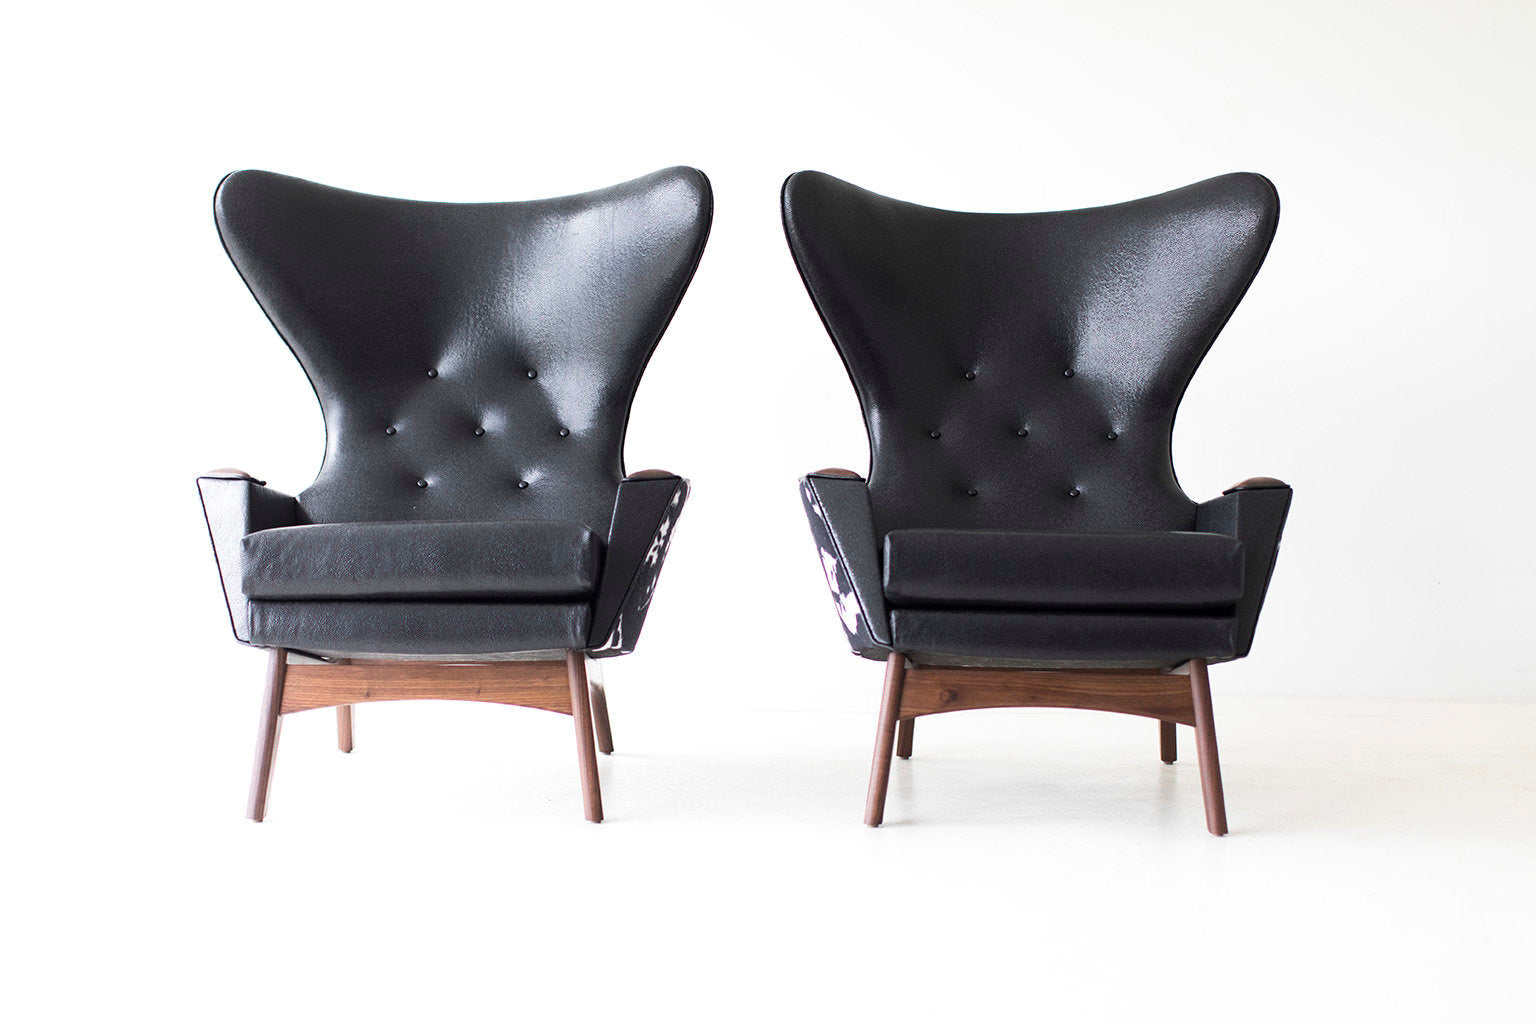 craft-associates-modern-wing-chairs-1407-08